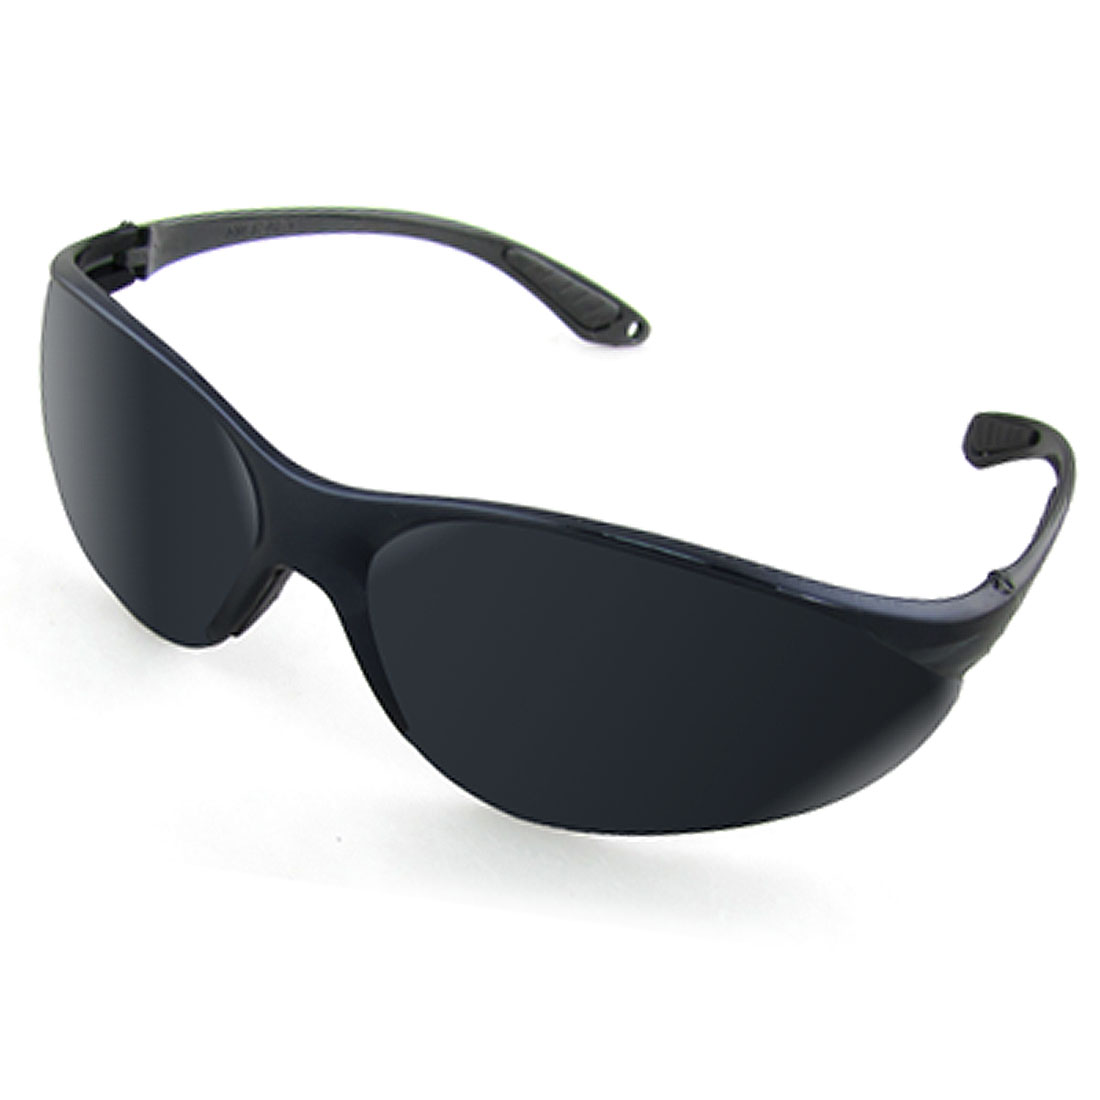 Unisex UV Protection Black Plastic Arms Dark Lens Sports Sunglasses